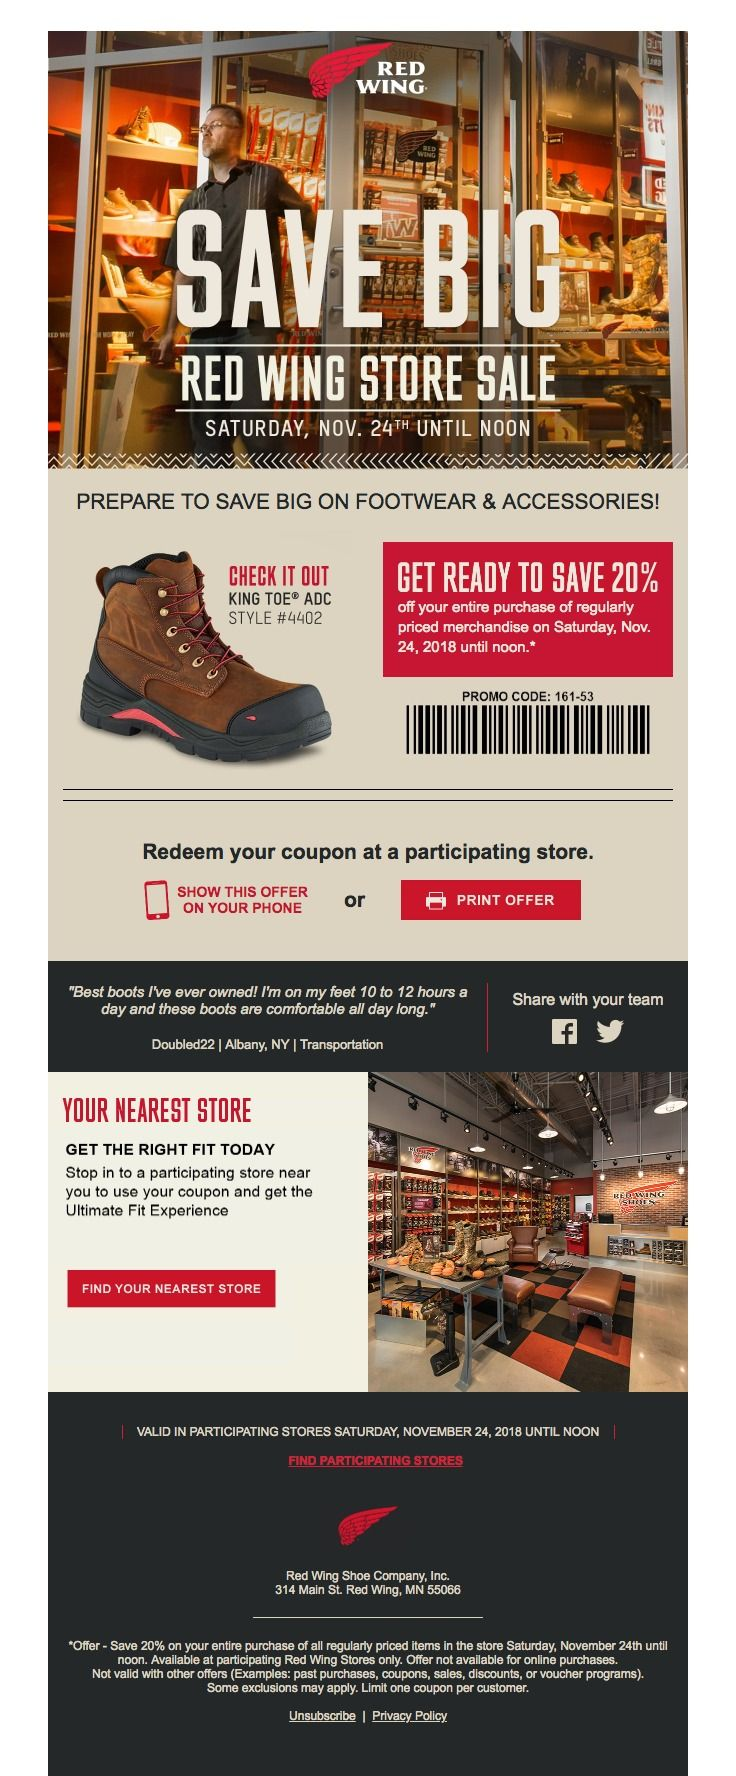 Red Wing Brands of America sent this